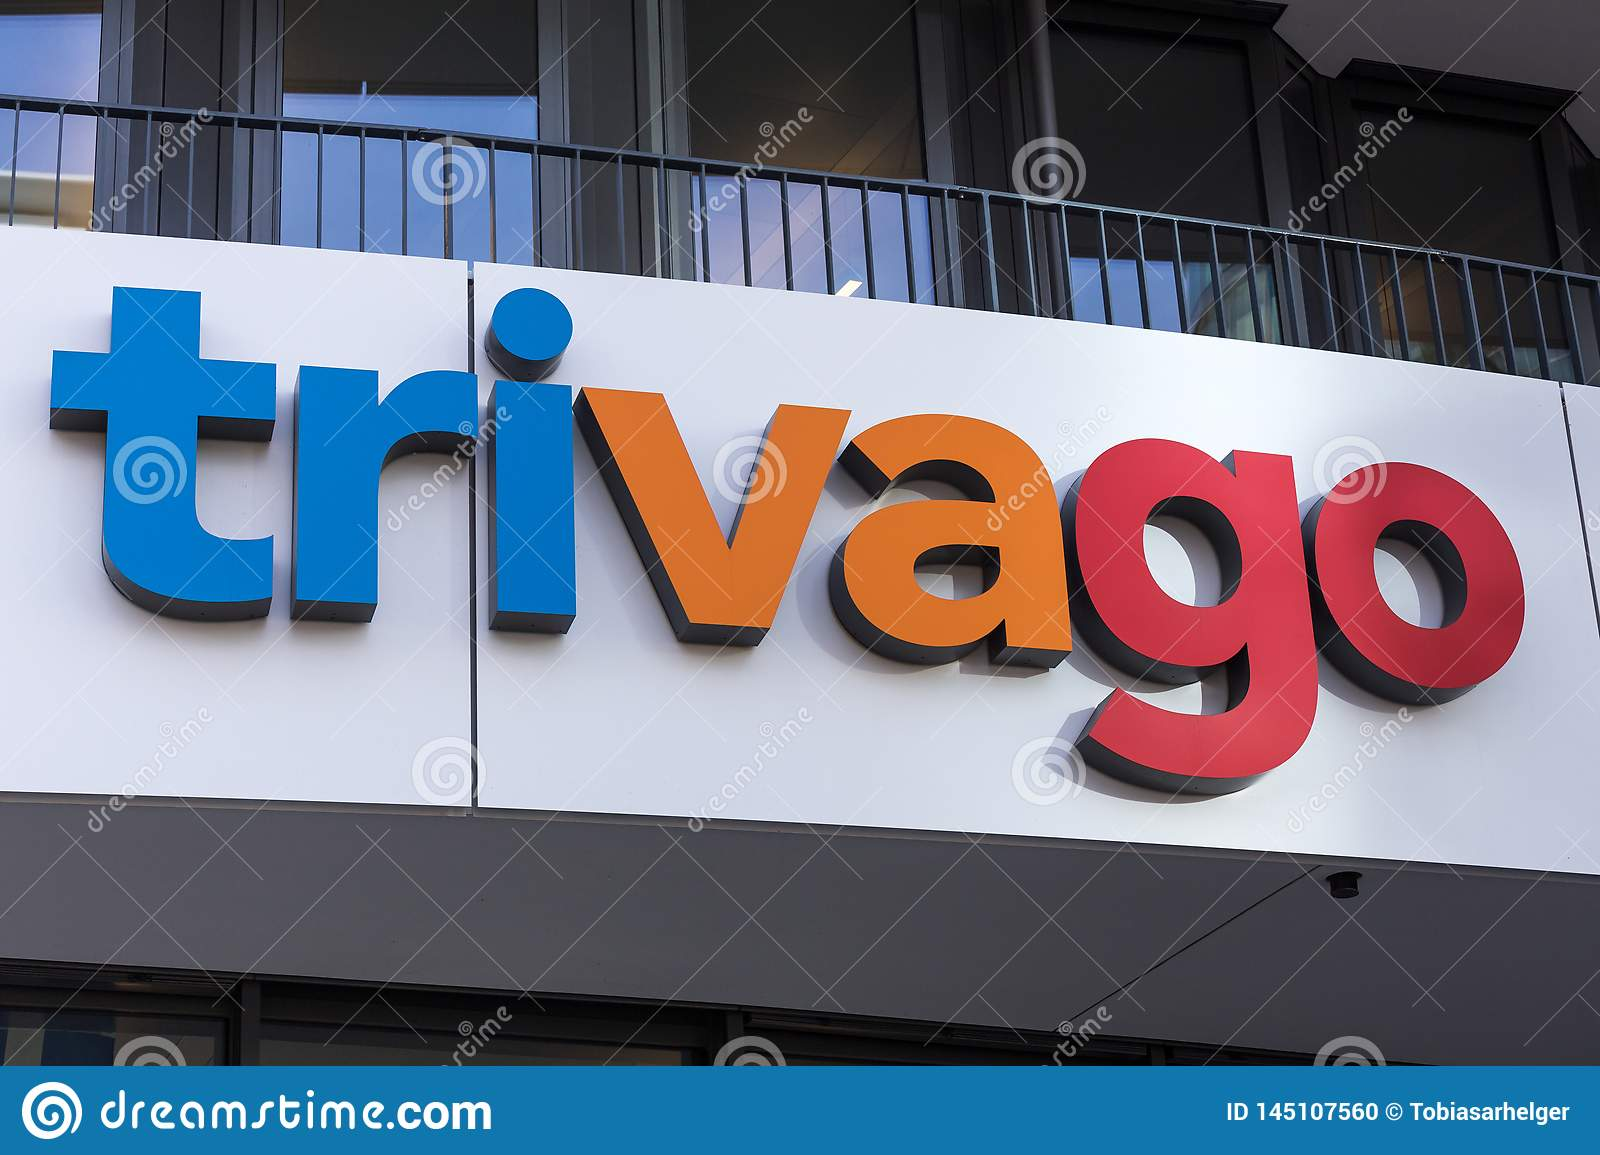 Trivago  sign in dusseldorf germany